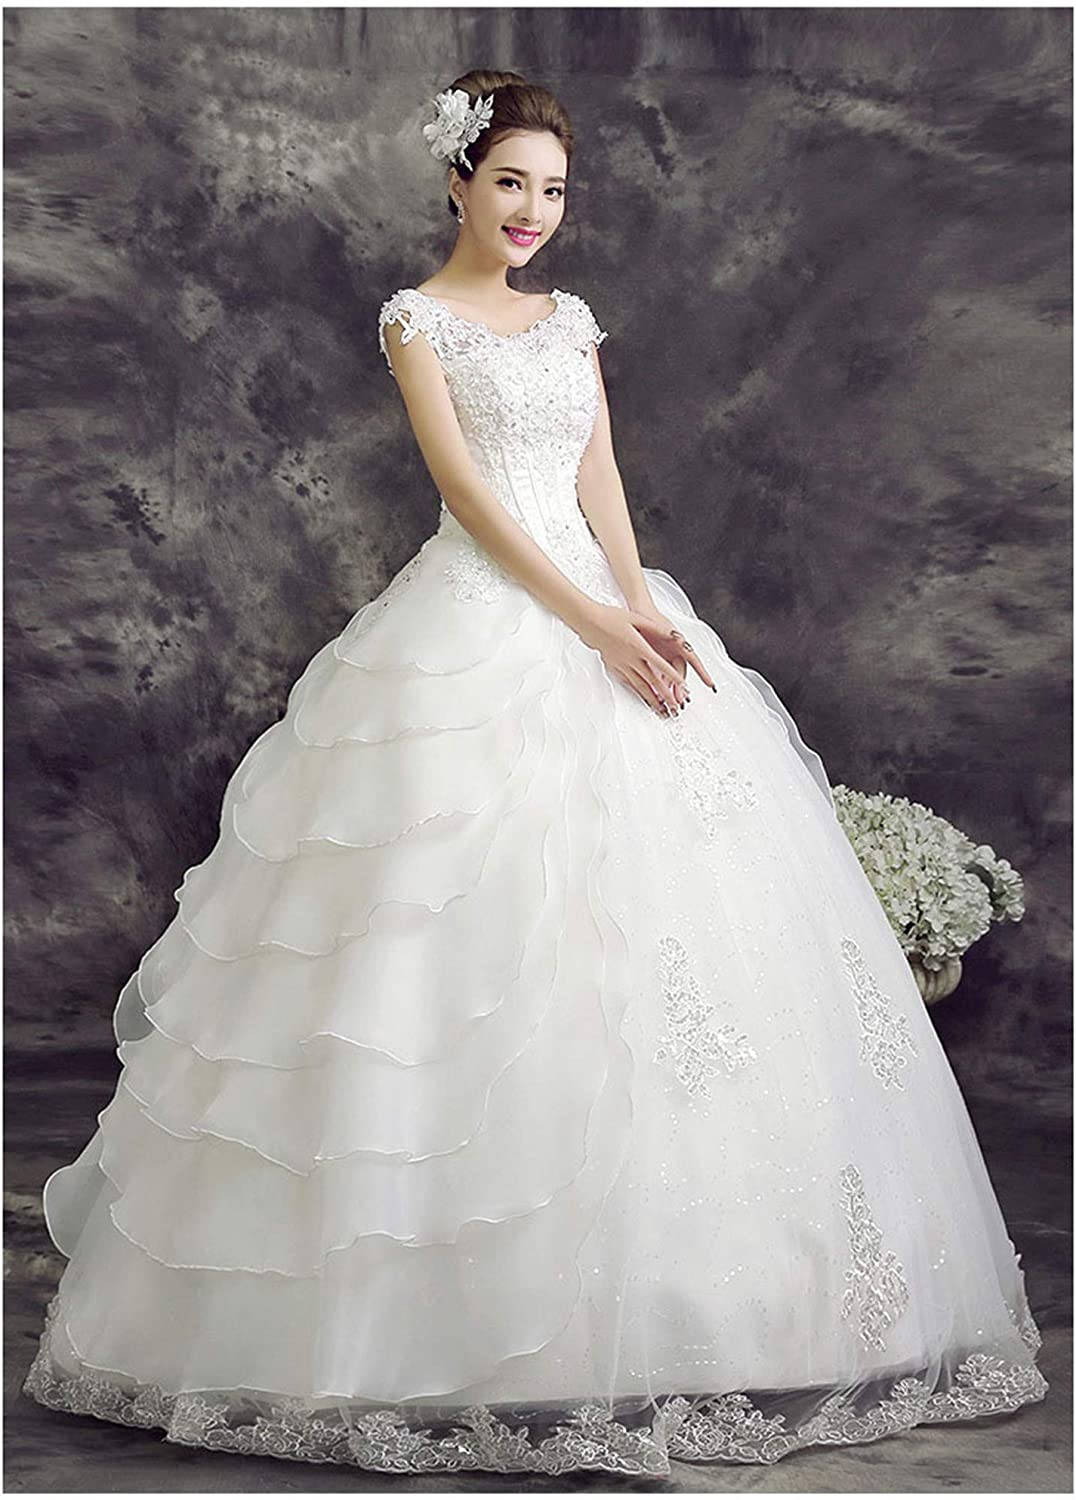 Wedding Dress Bride Double Shoulder Thickened Lace Floor Length Girl Skirt Prom Elegant Sexy